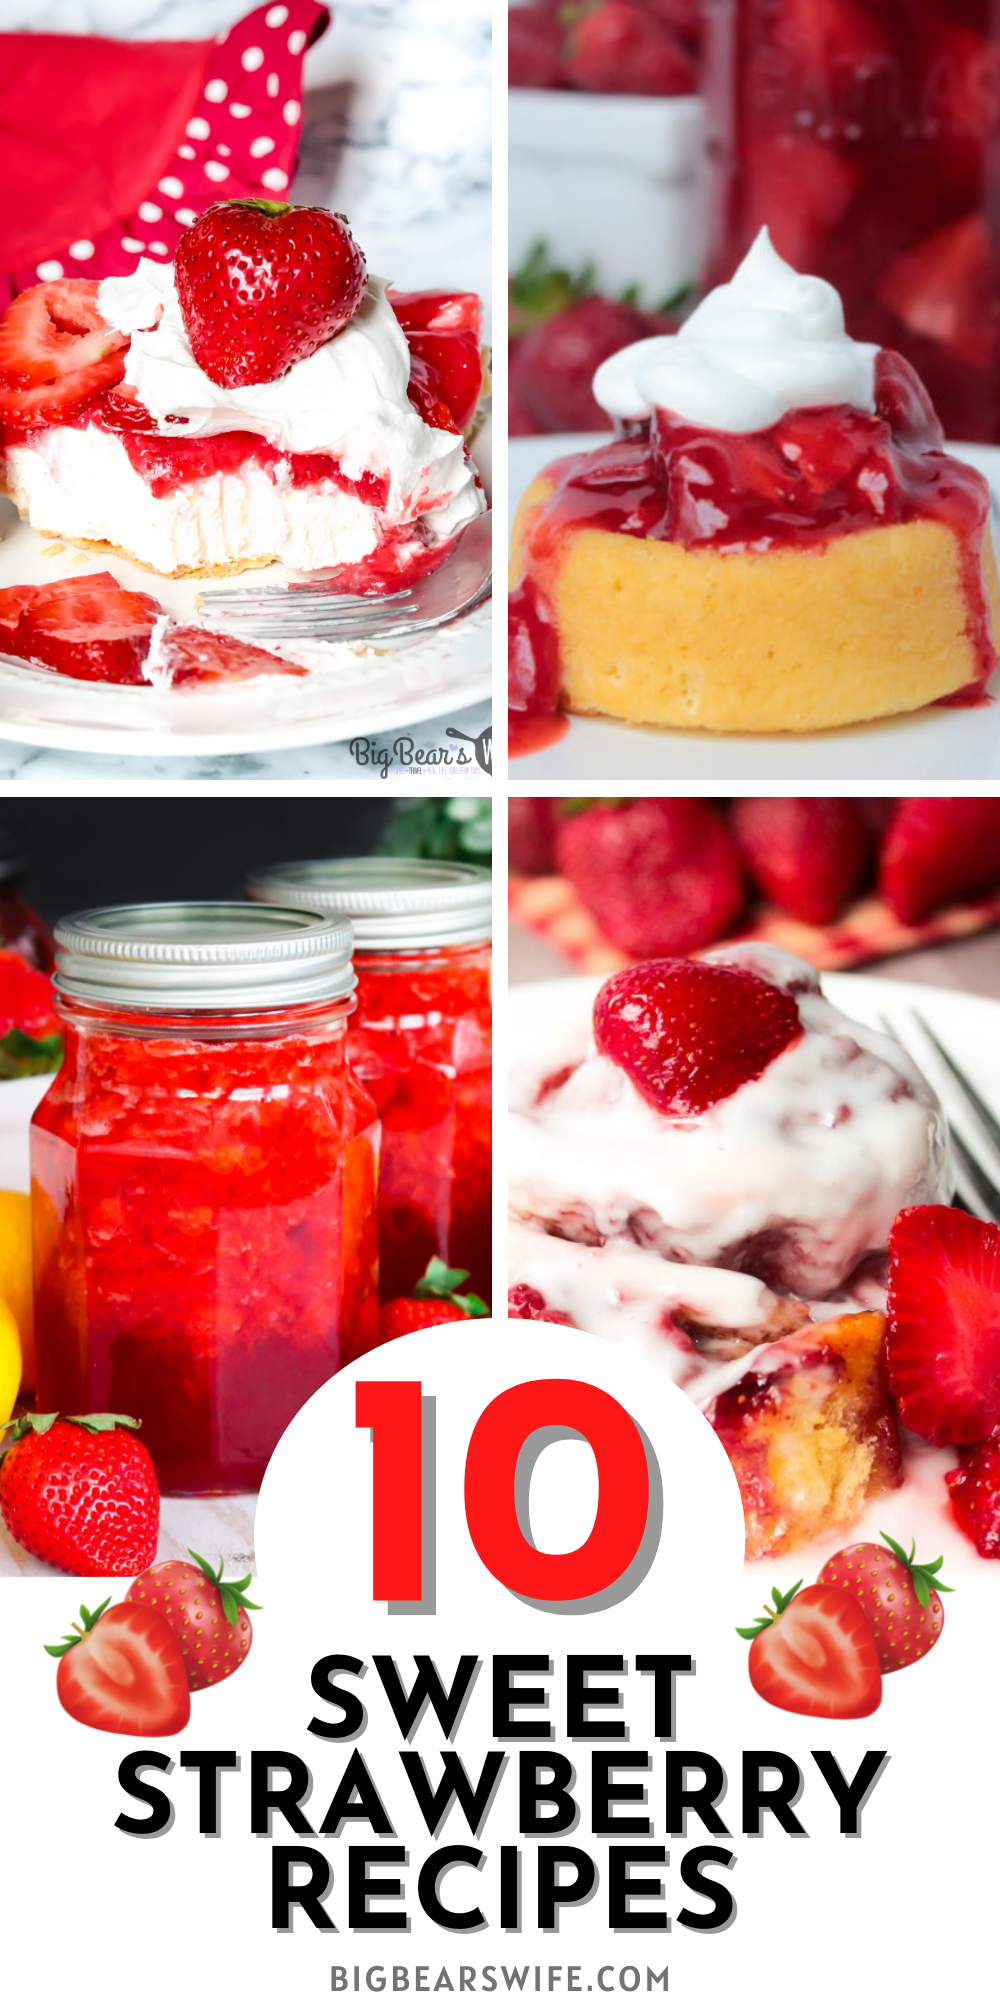 Summer weather is here which means it is time for tons of strawberry recipes! Here you'll find 10 sweet strawberry recipes that are perfect for those ripe summer strawberries! via @bigbearswife